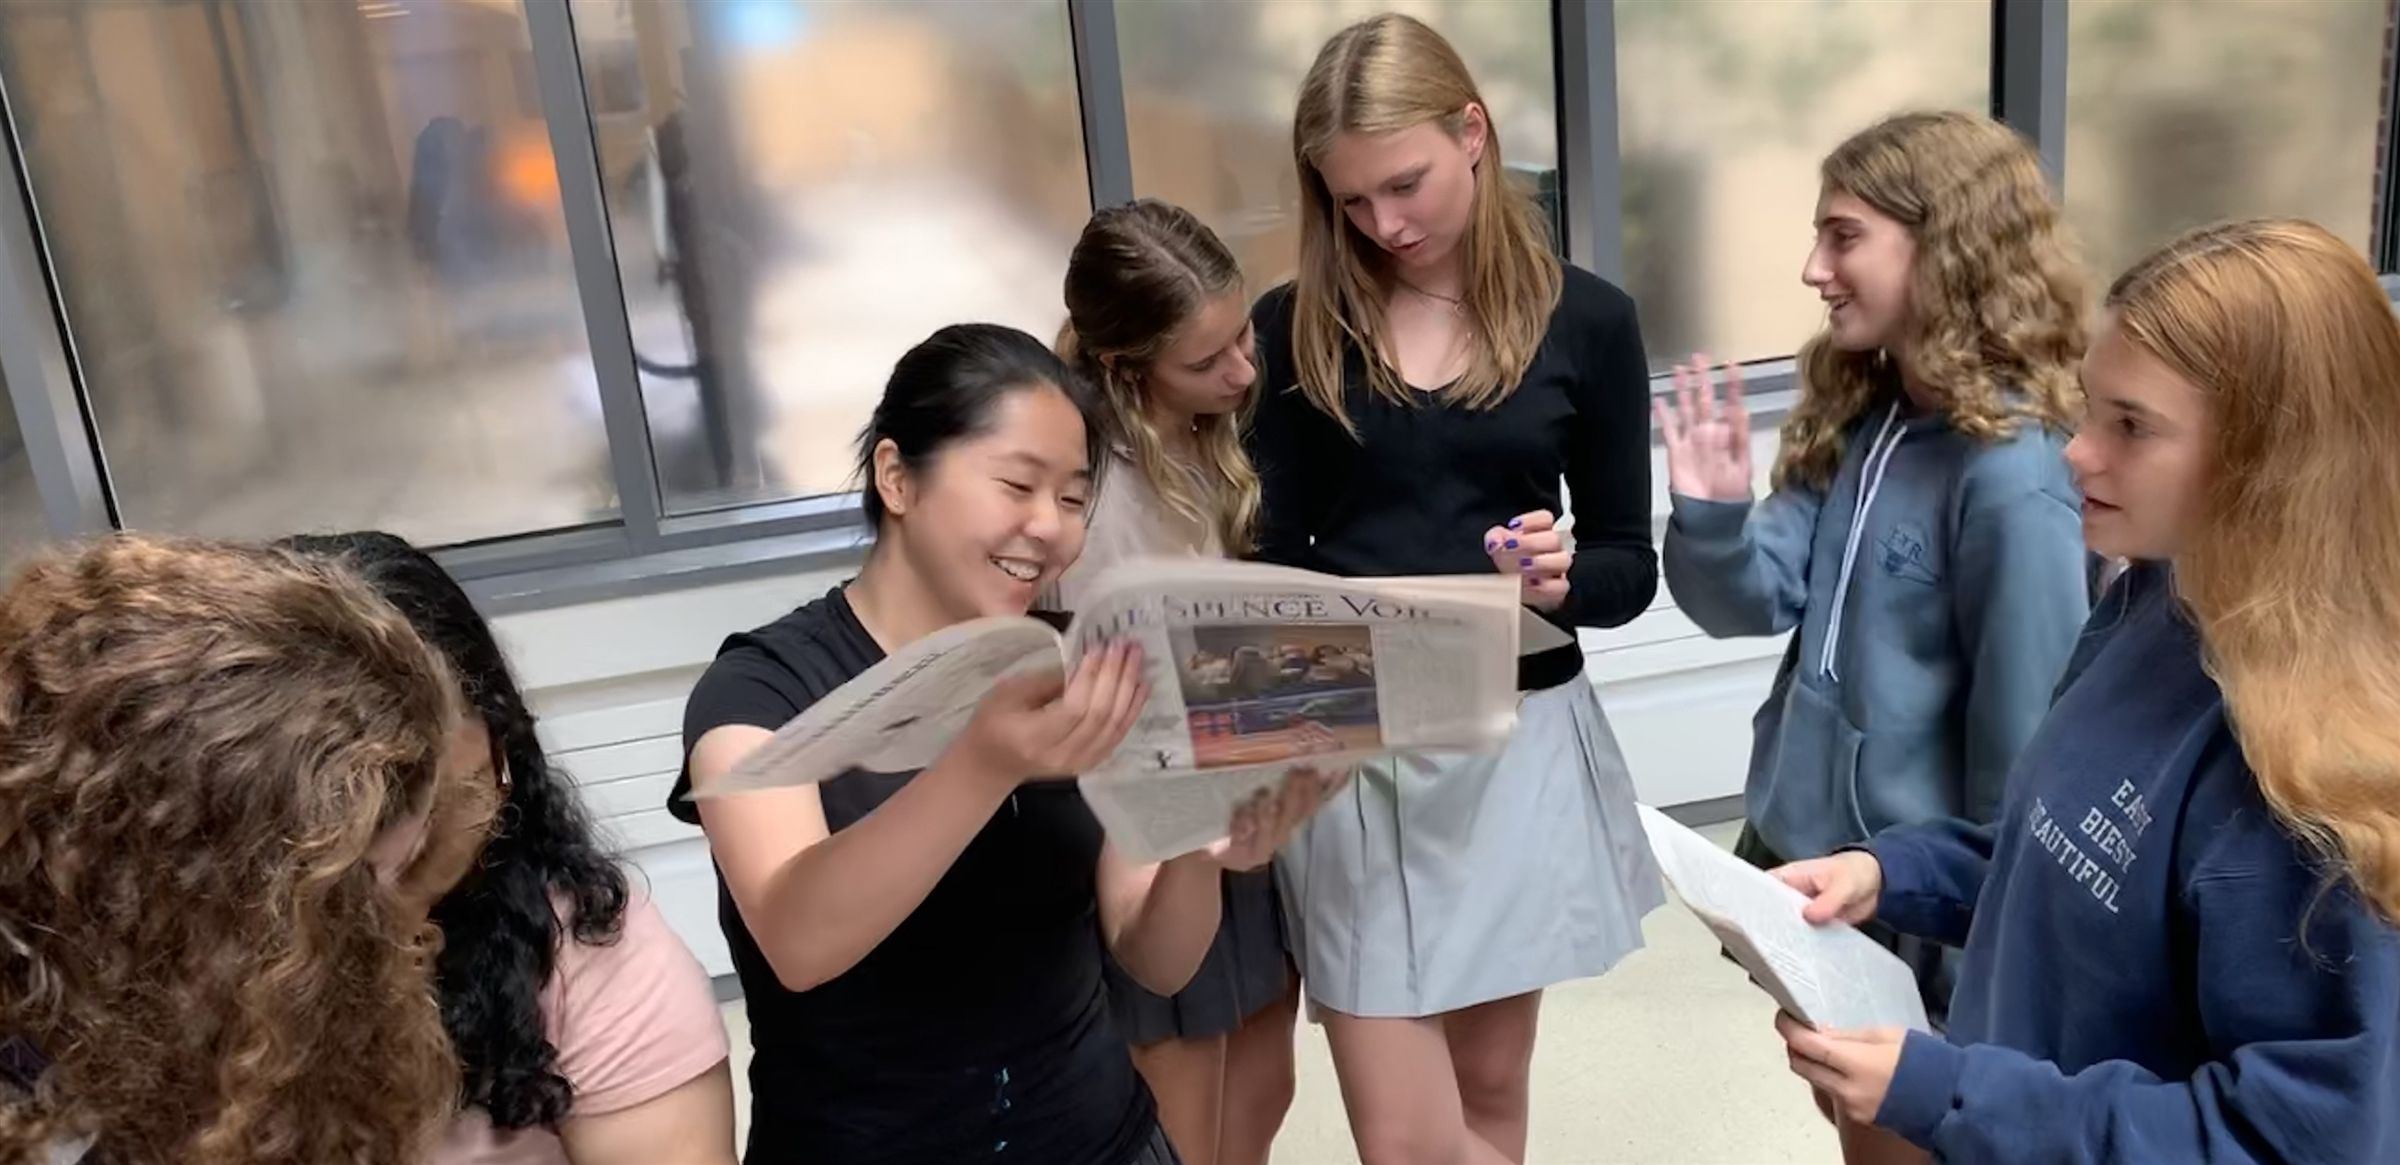 Spence's student newspaper, The Spence Voice, was awarded a Gold Medal from the prestigious Columbia Scholastic Press Association's (CSPA) Medalist Critique.